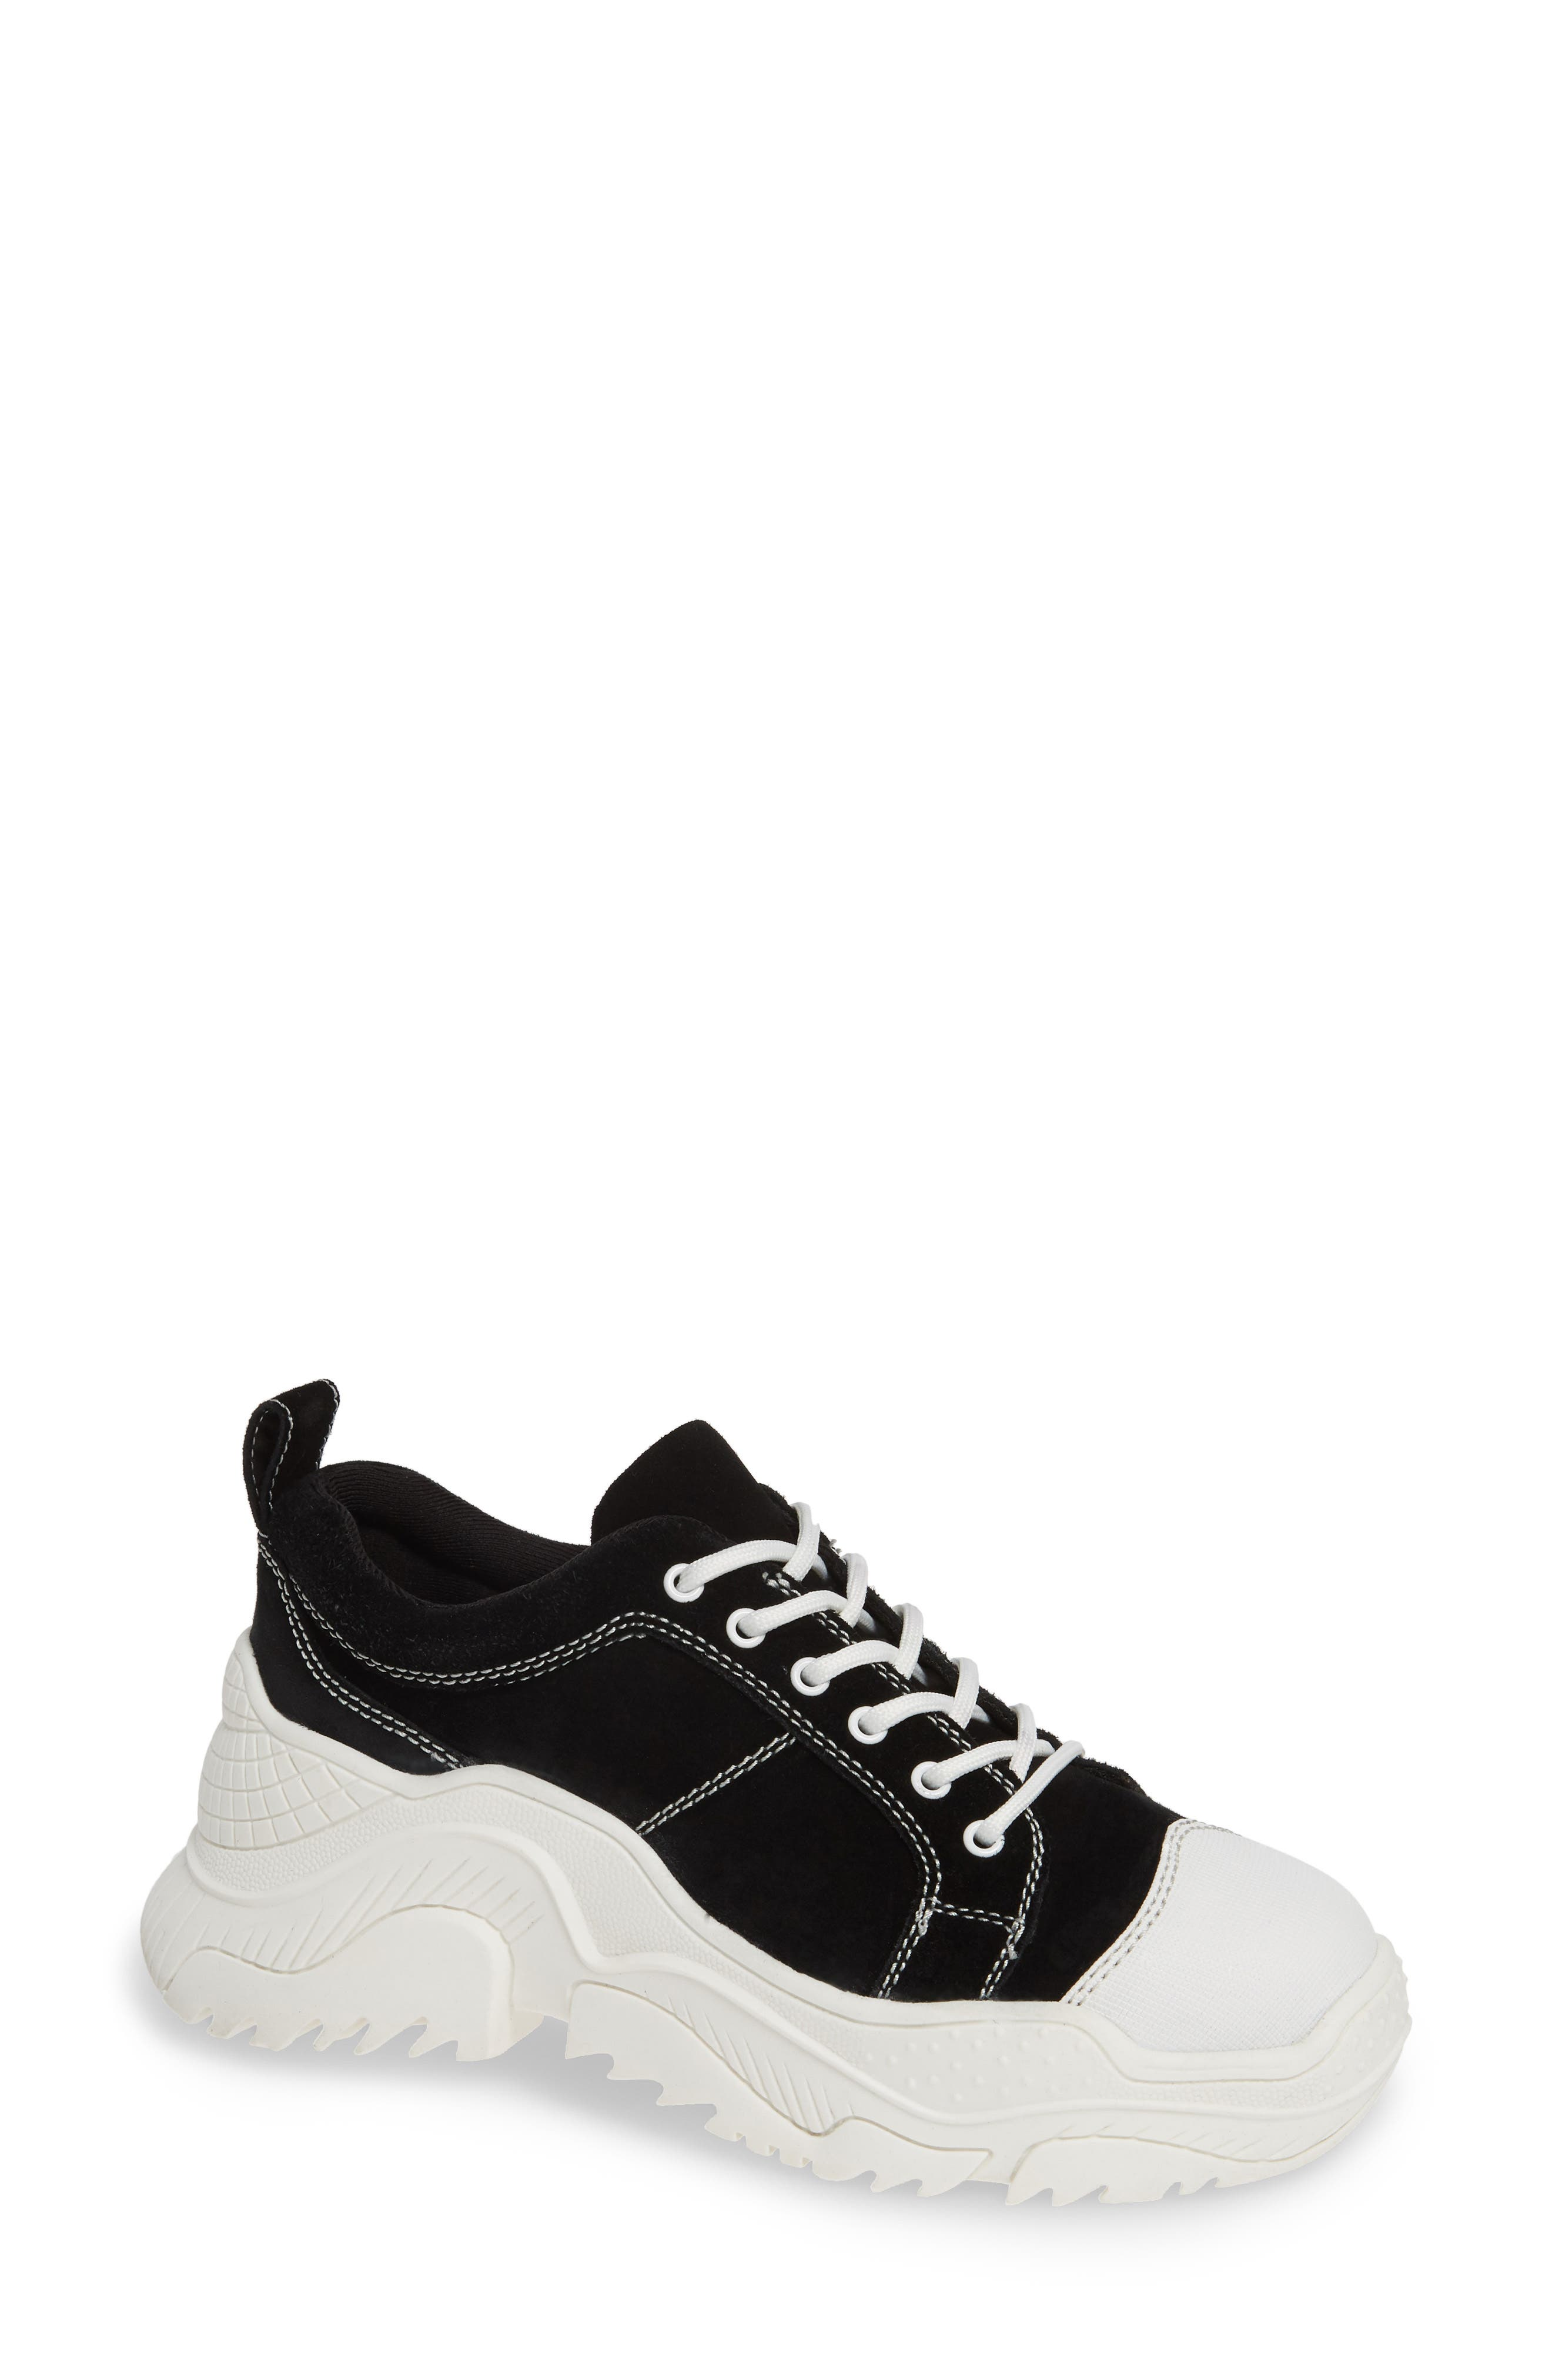 JEFFREY CAMPBELL Remnant Sneaker, Main, color, BLACK SUEDE WHITE